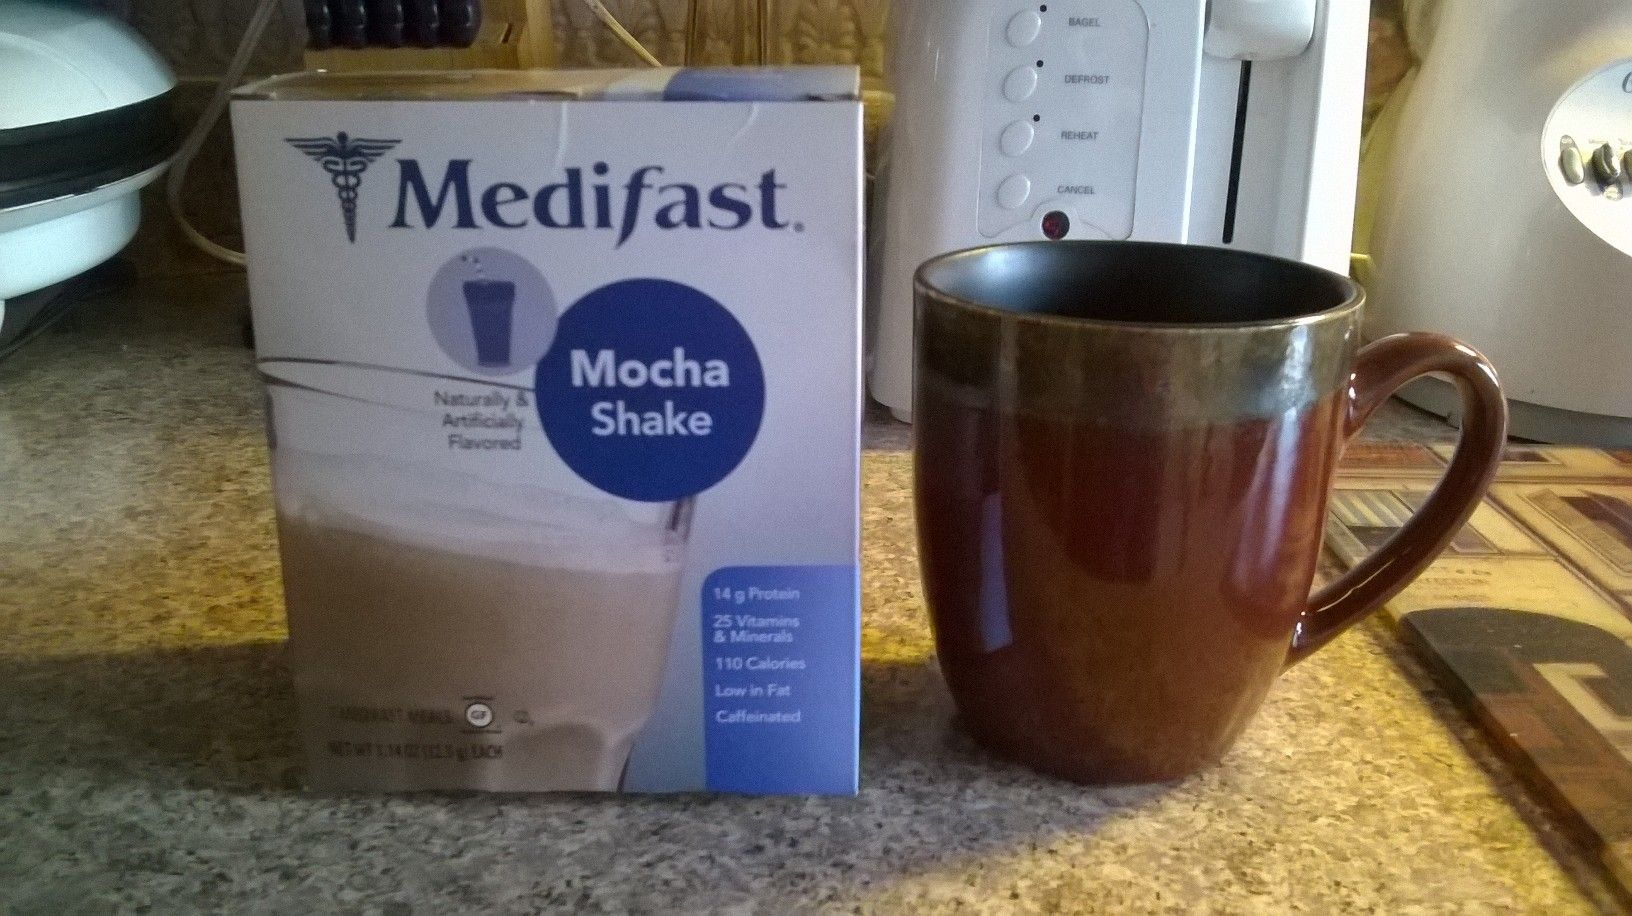 This Is One Of My New Favorites Blend A Packet Mocha Shake With An 8 Oz Cup Coffee To Make Delicous Joe Cacino